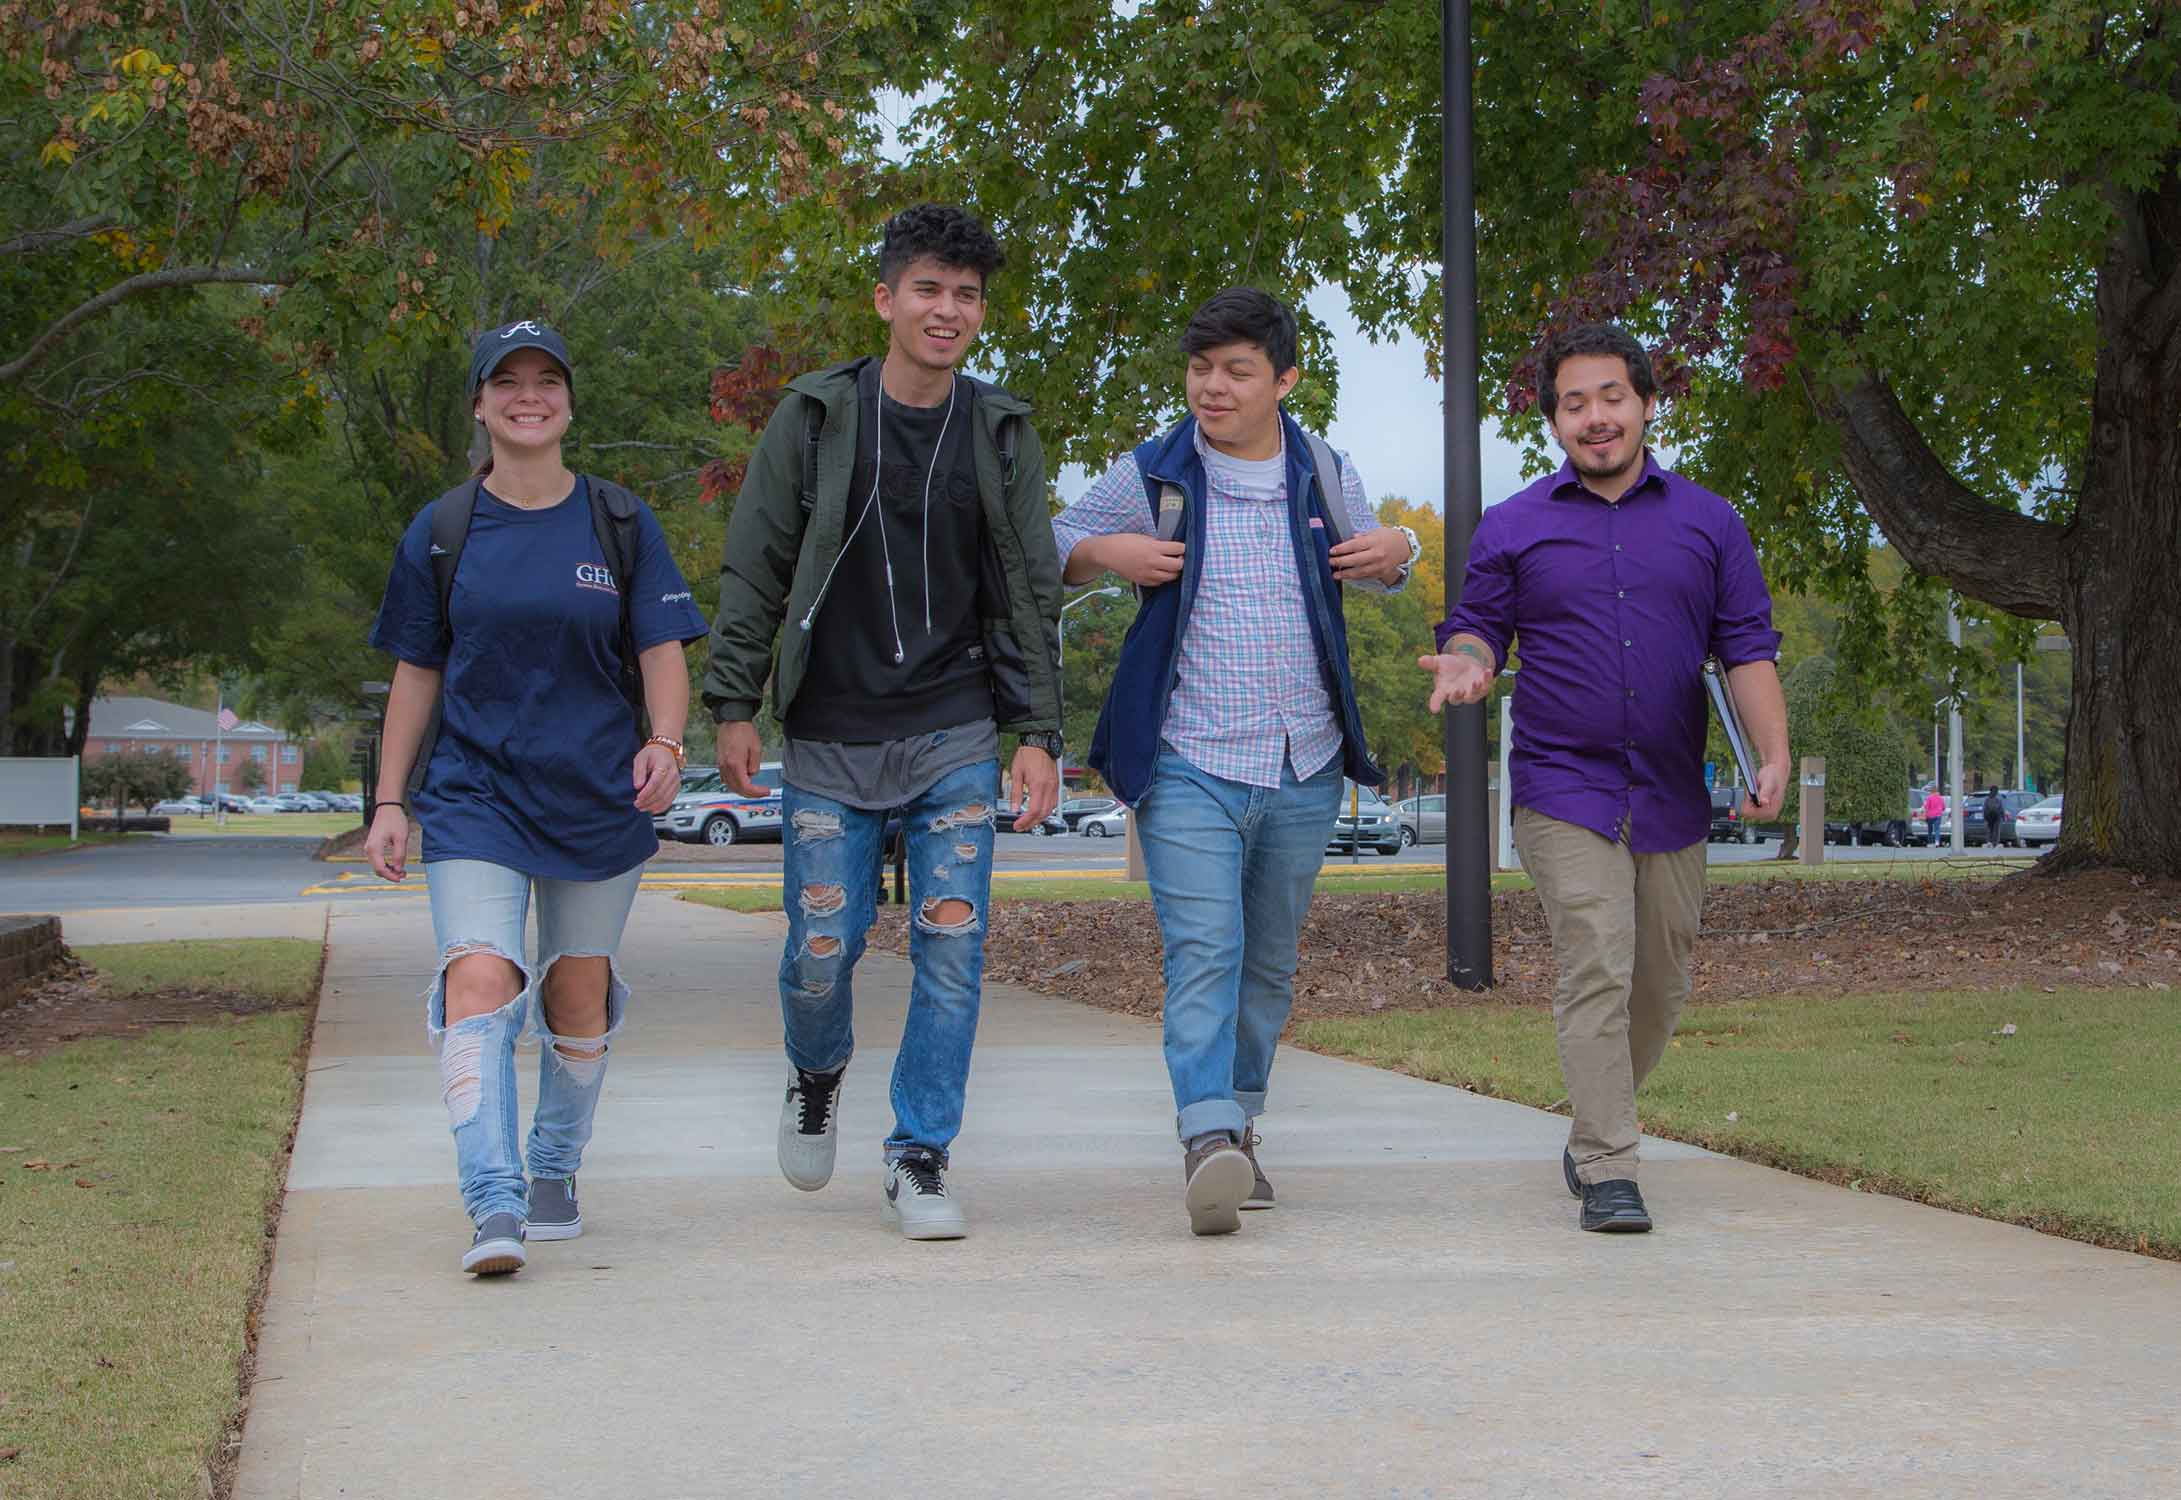 students walking on path